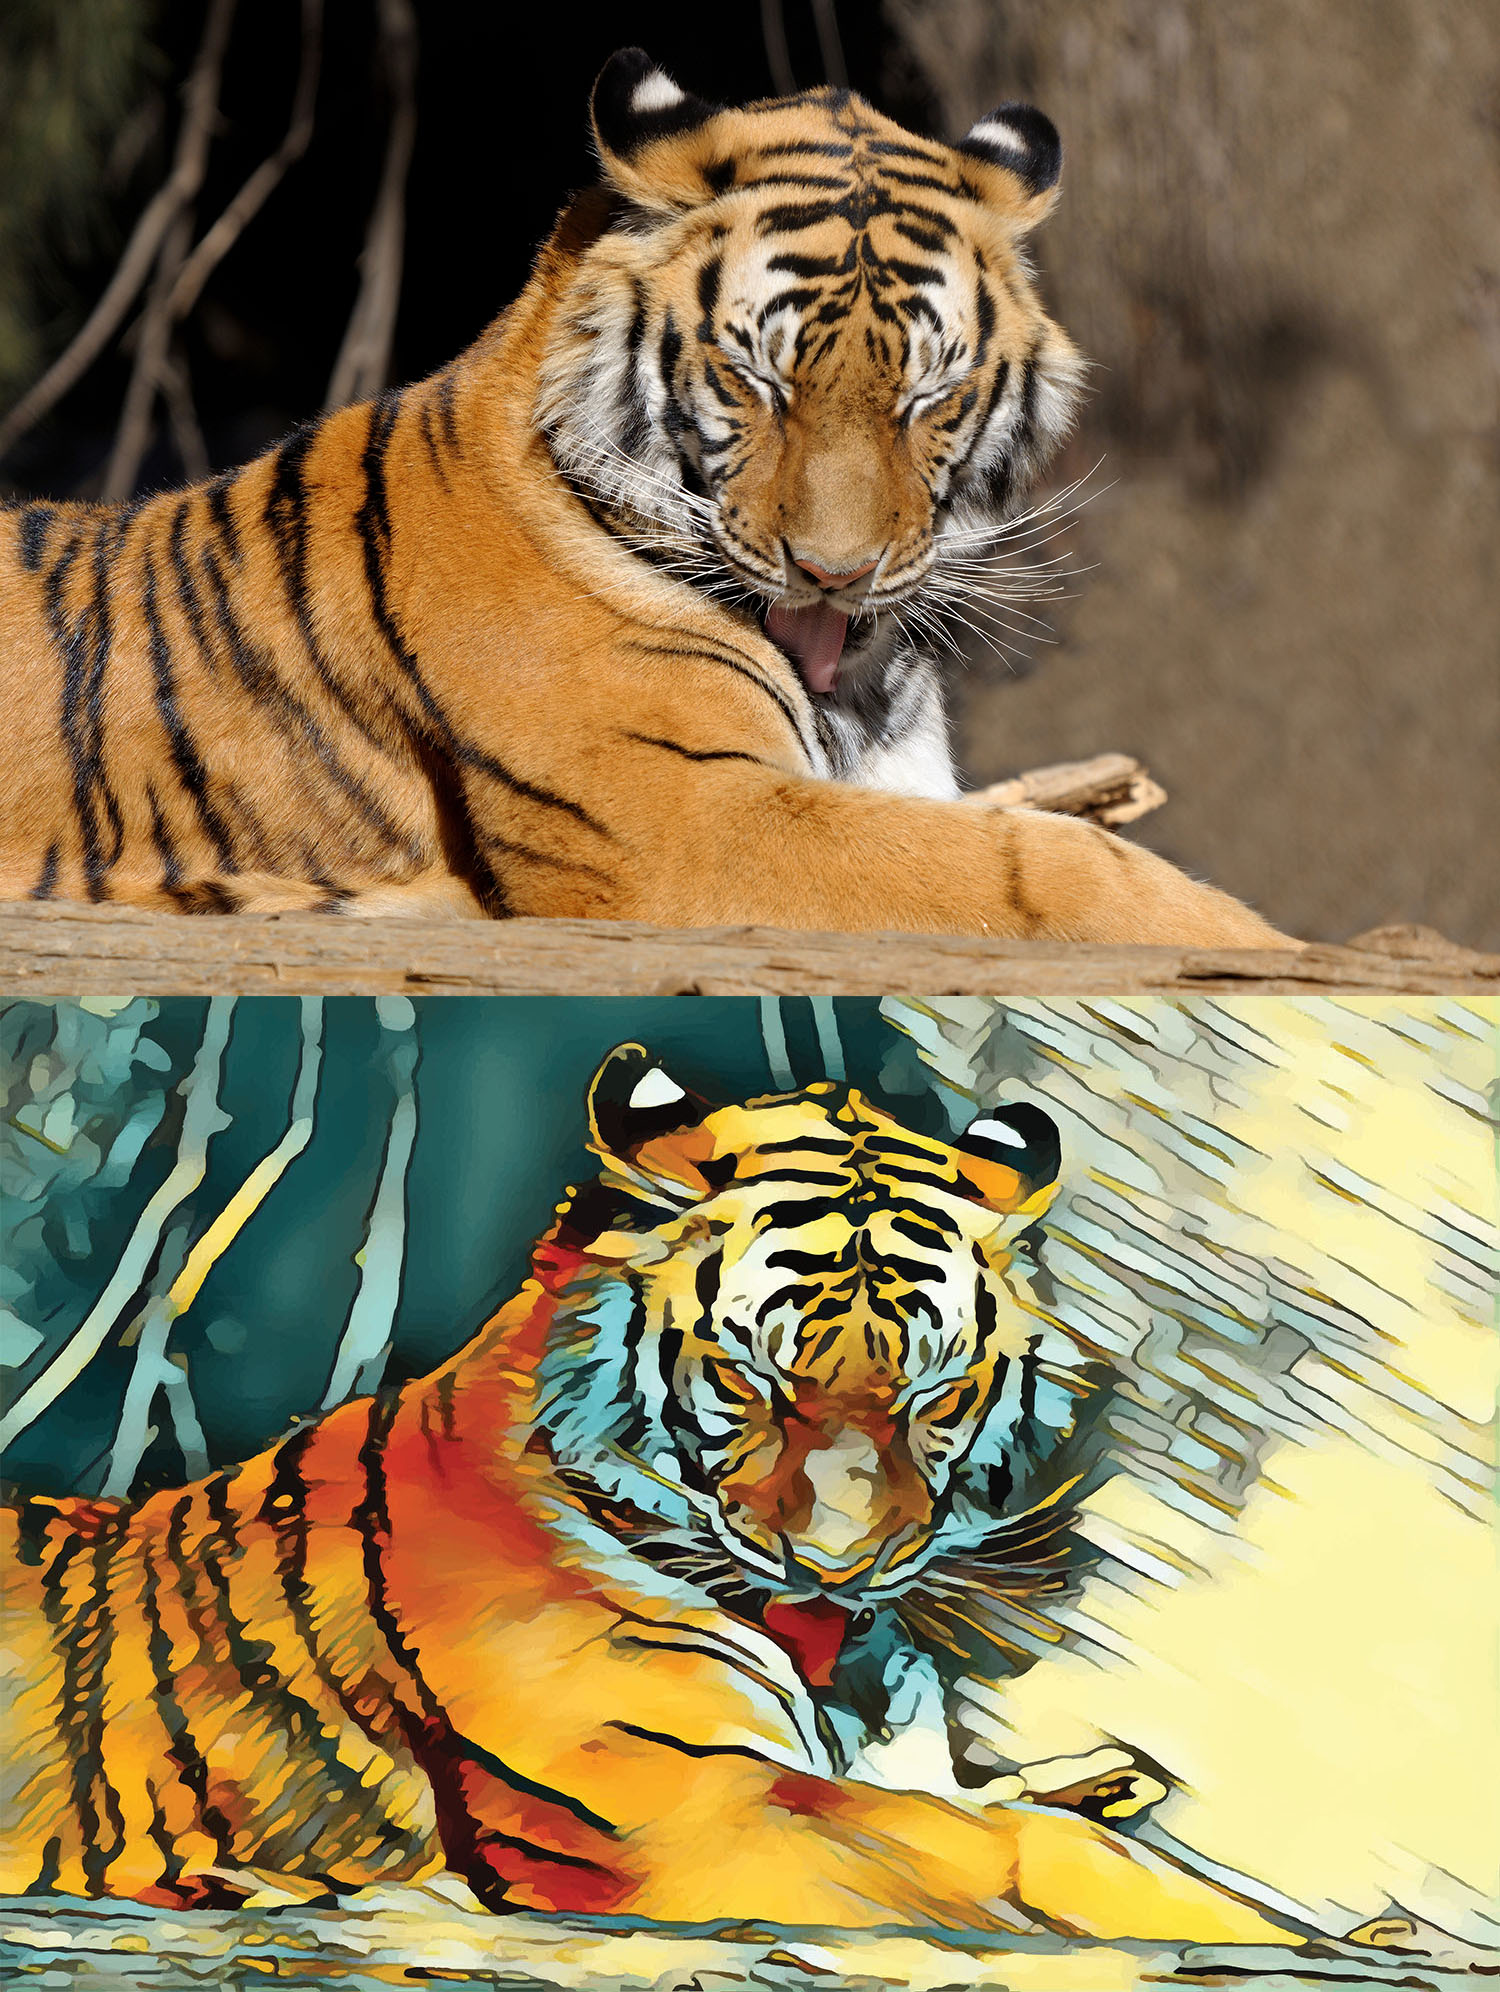 Before and after stylized image of a tiger licking its fur